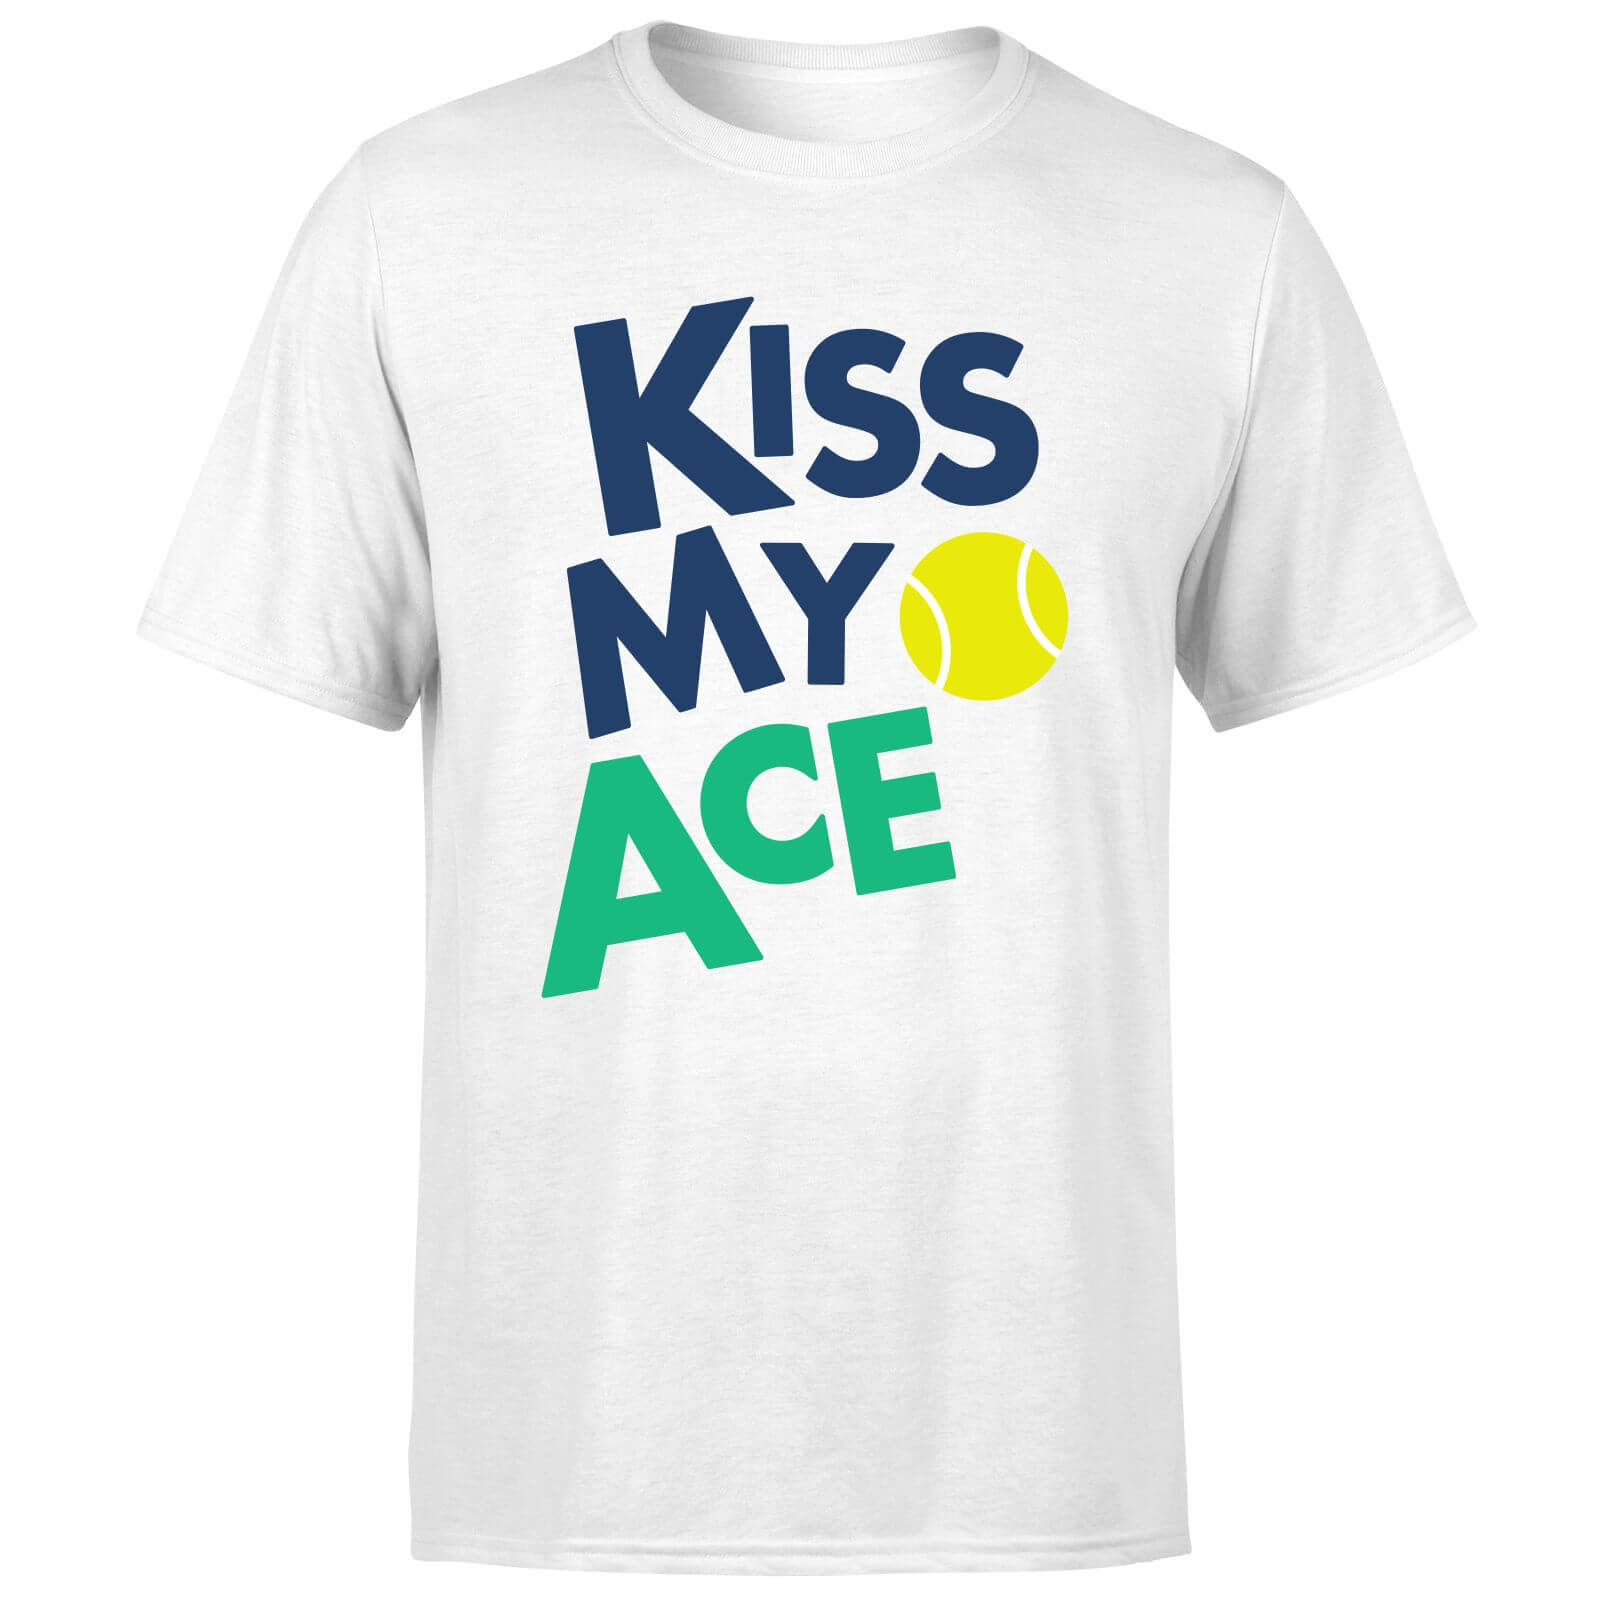 Kiss my Ace T-Shirt - White